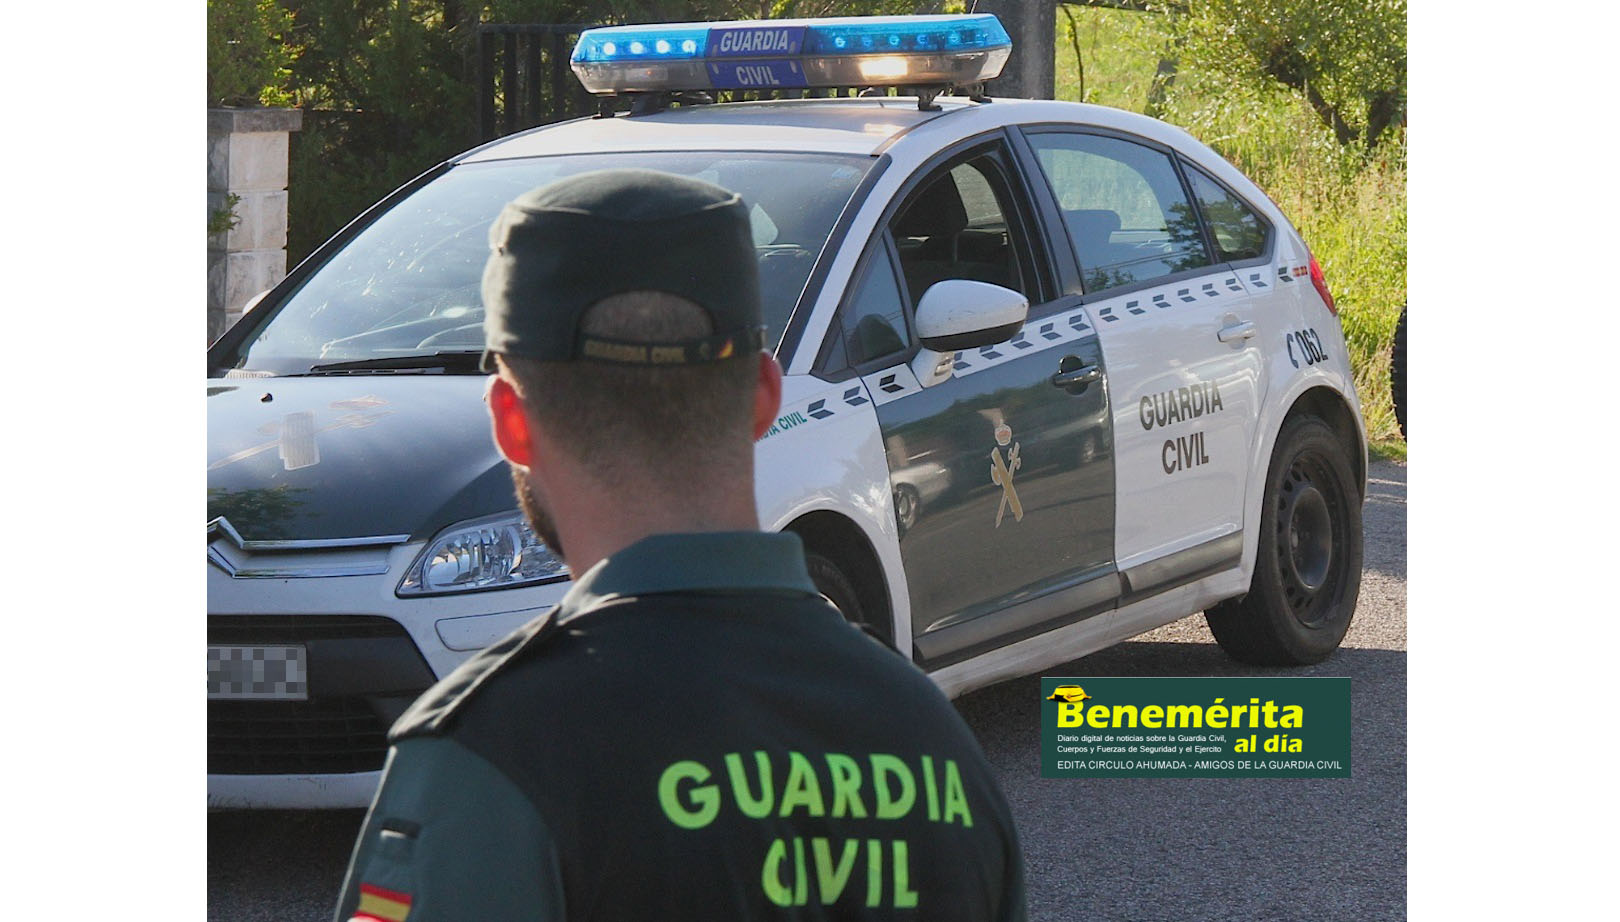 guardia civil 2 1